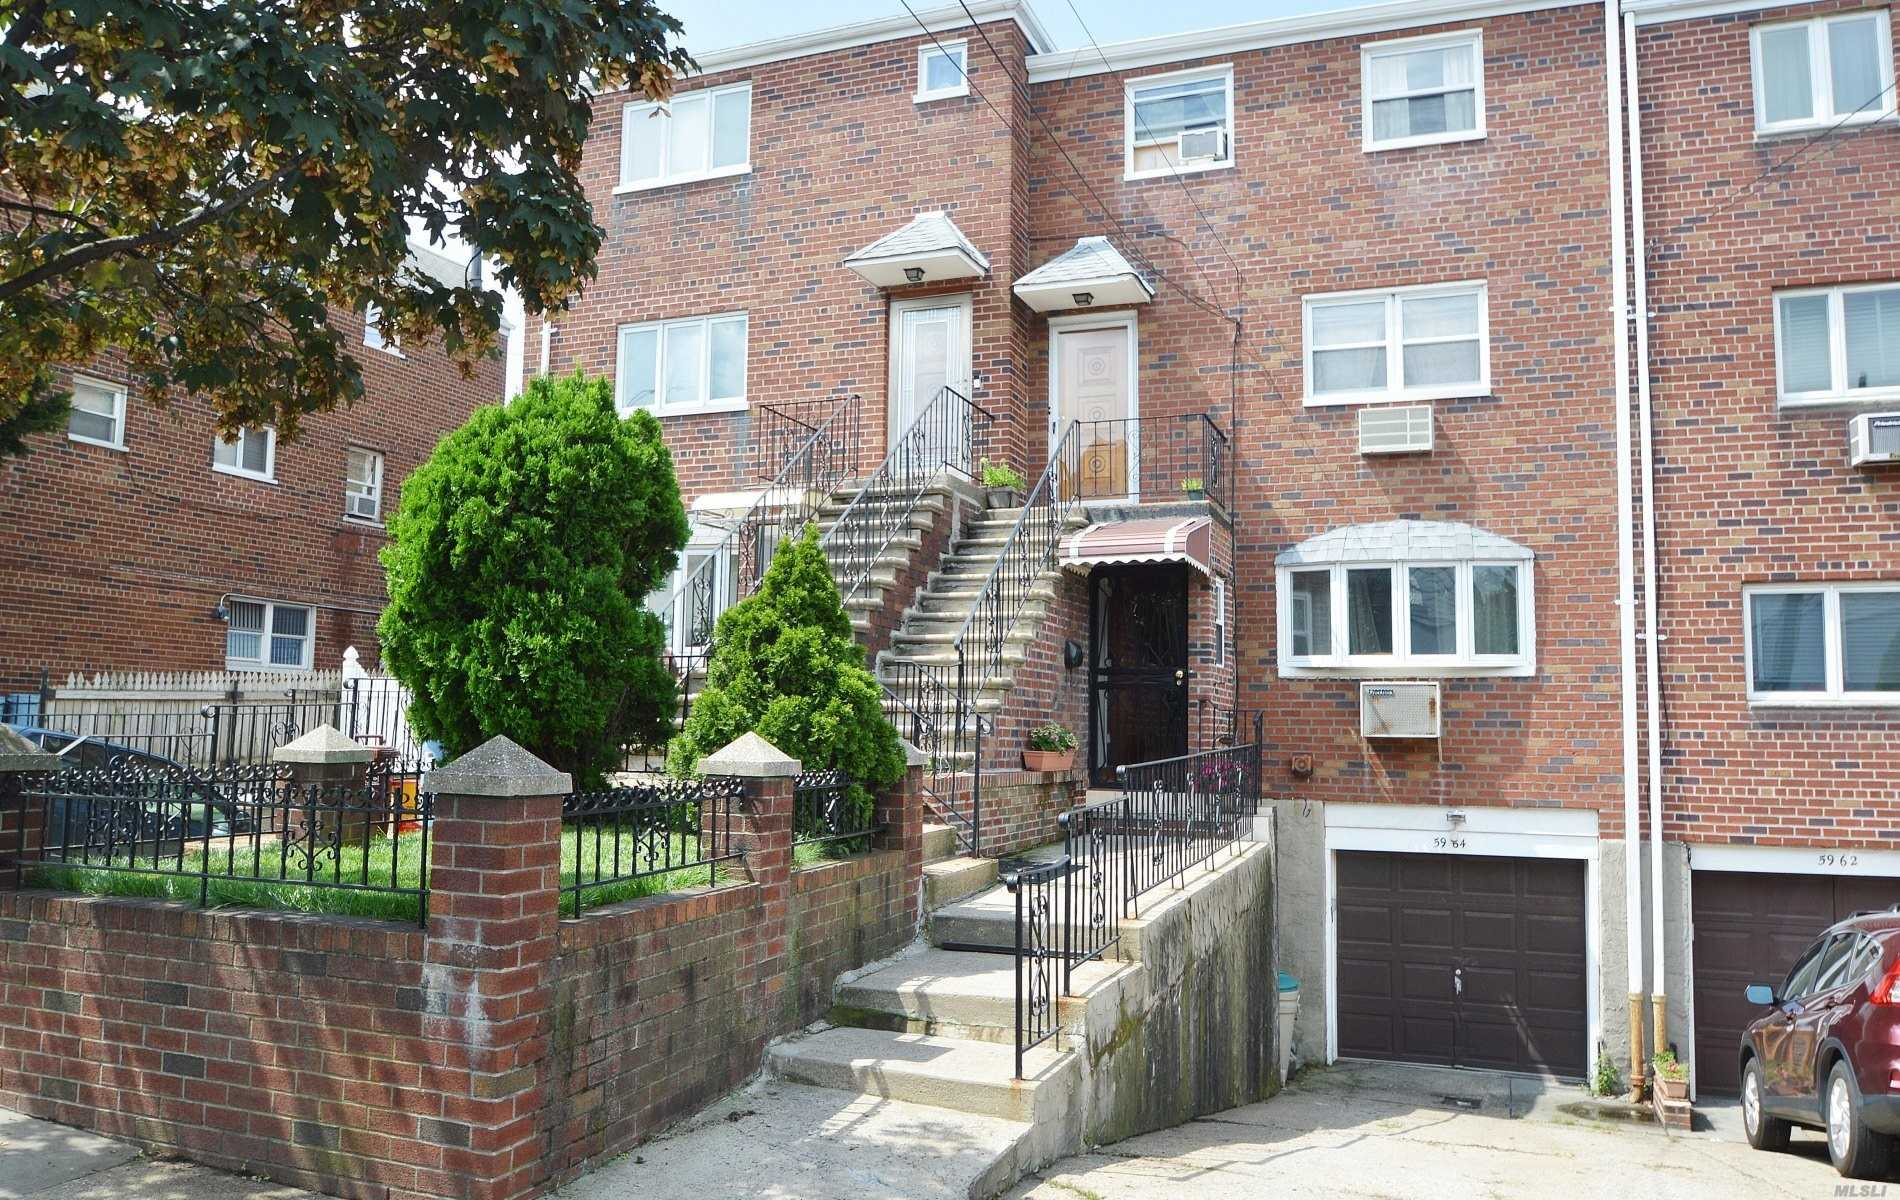 Legal Two Family Duplex! Move Right In To This Beautifully Renovated Home! 2 New Kitchens With Stainless Steel Appliances. 3 & Half Bathrooms, Fenced Backyard, View Of The Skyline From The 3rd Floor Unit. Attached Garage, Driveway Fits 2 Cars, Finished Basement With High Ceiling. Young Roof, Boiler And Electric. Book Your Appointment Today!